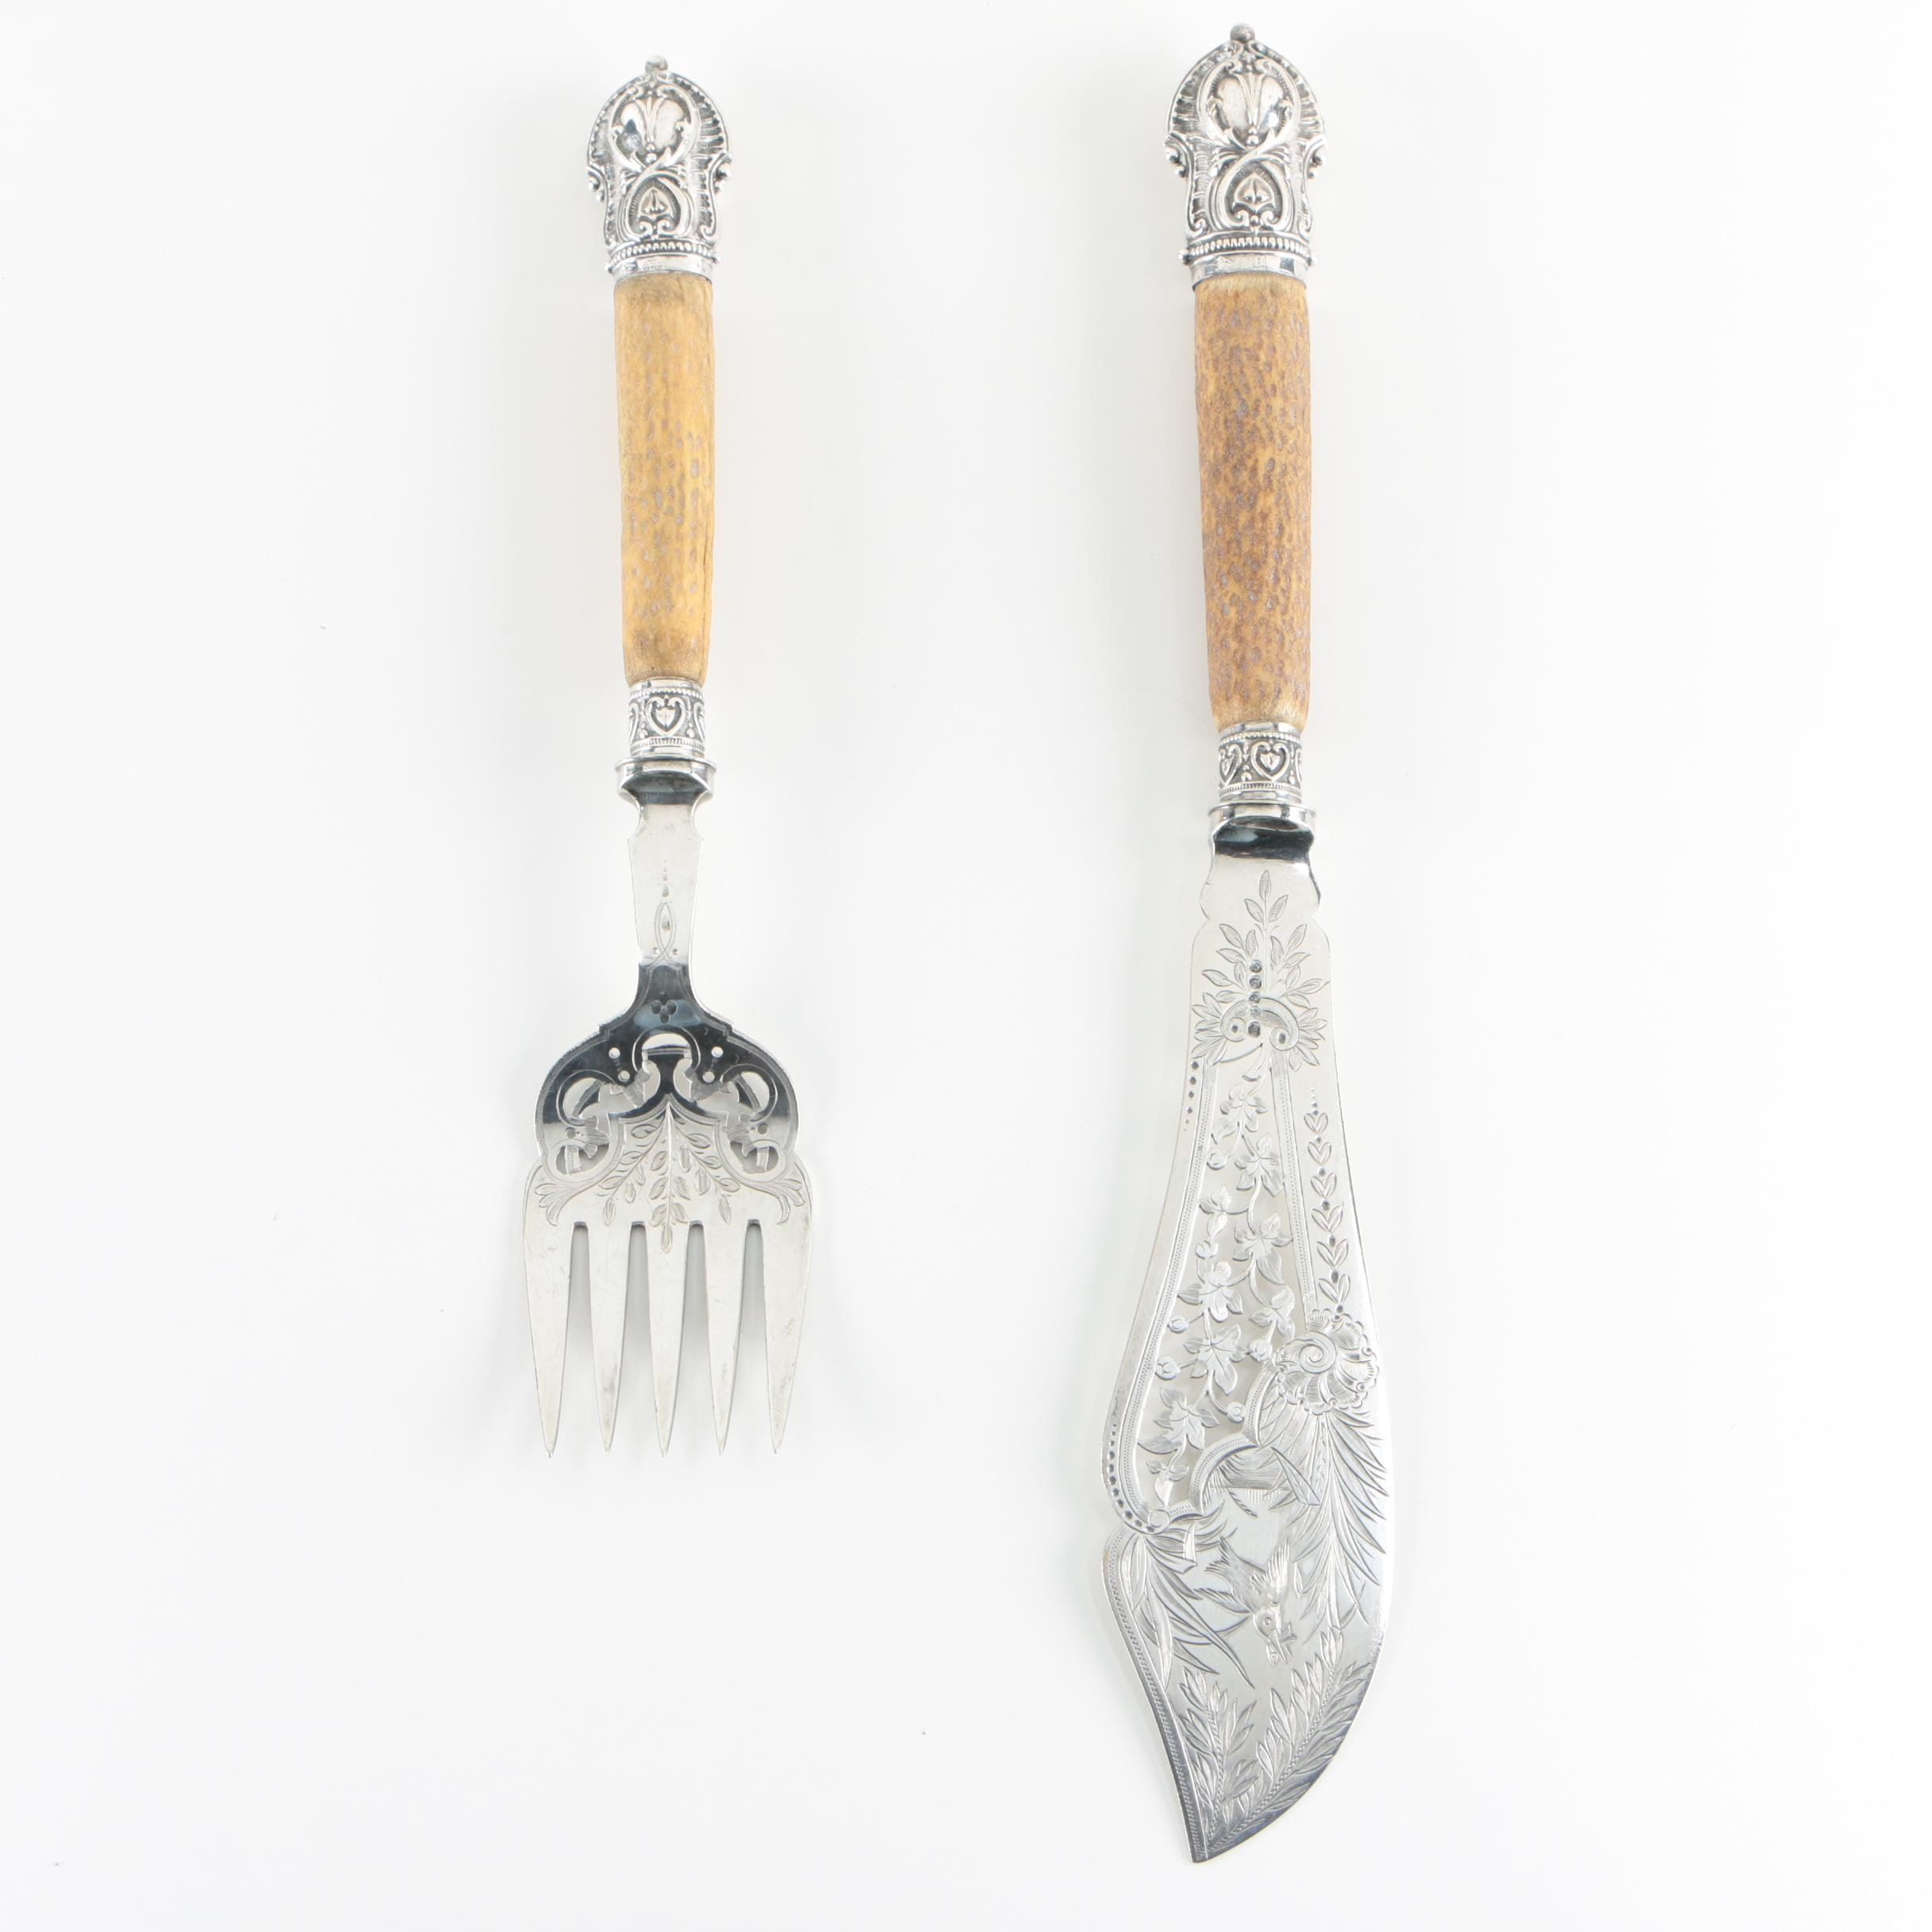 Harrison Brothers & Howson Silver Plate Fish Servers, Late 19th/ Early 20th